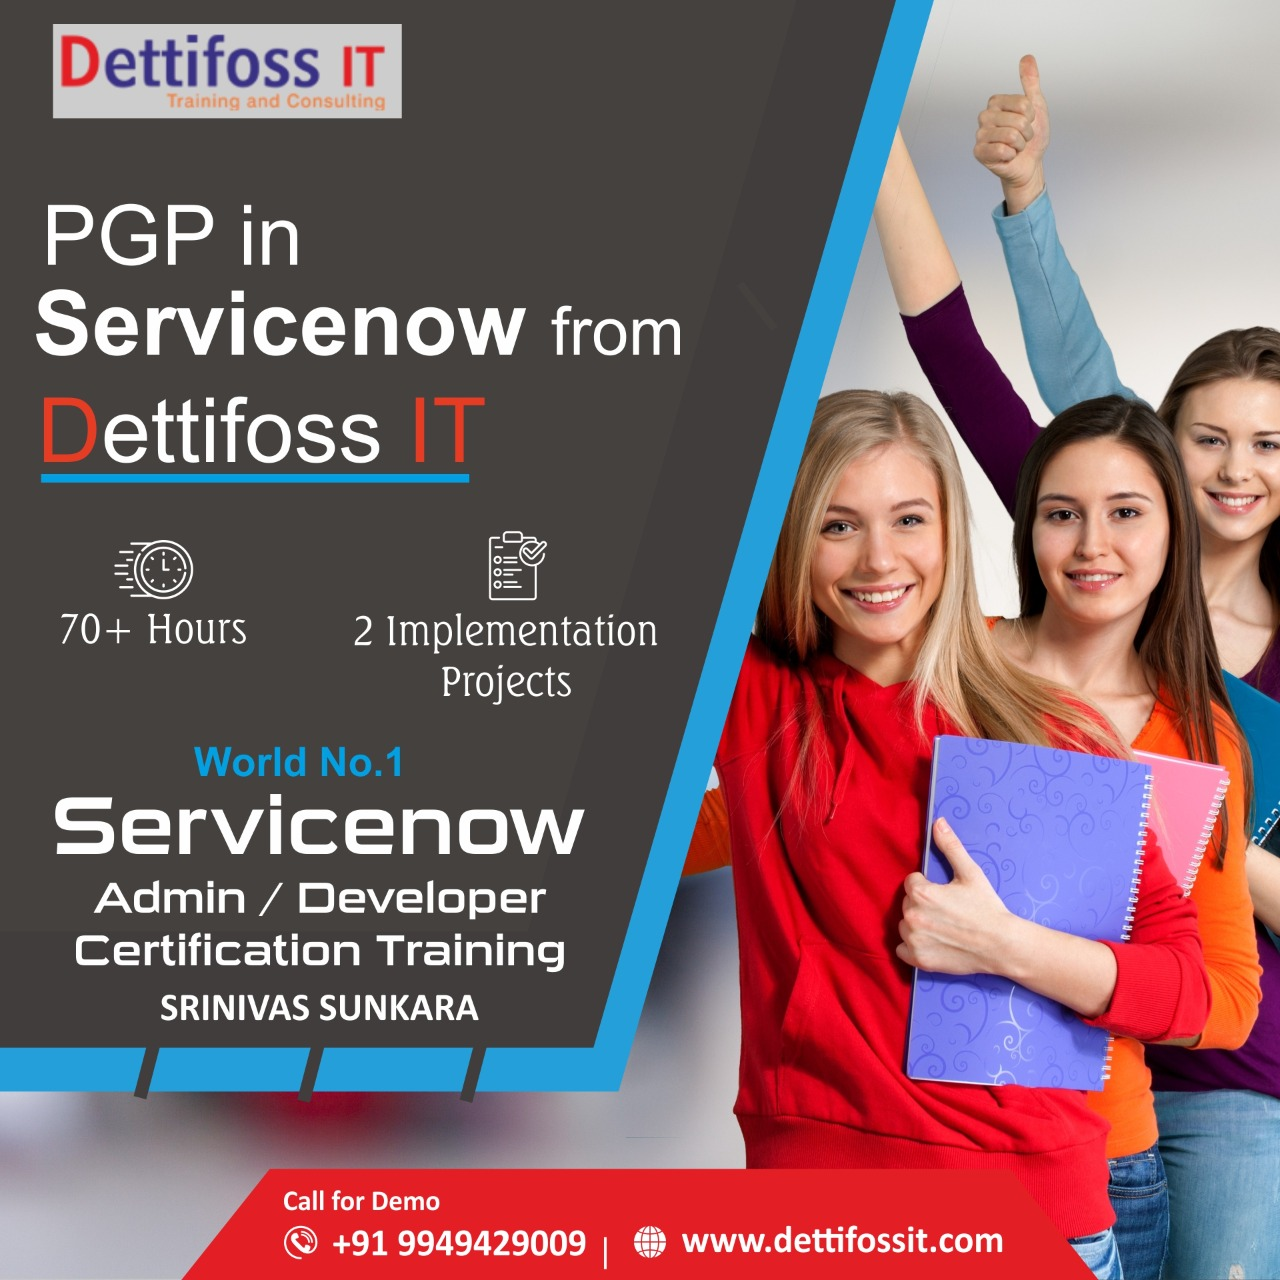 PGP integration + ServiceNow Training from DettifossIT in Hyderabad